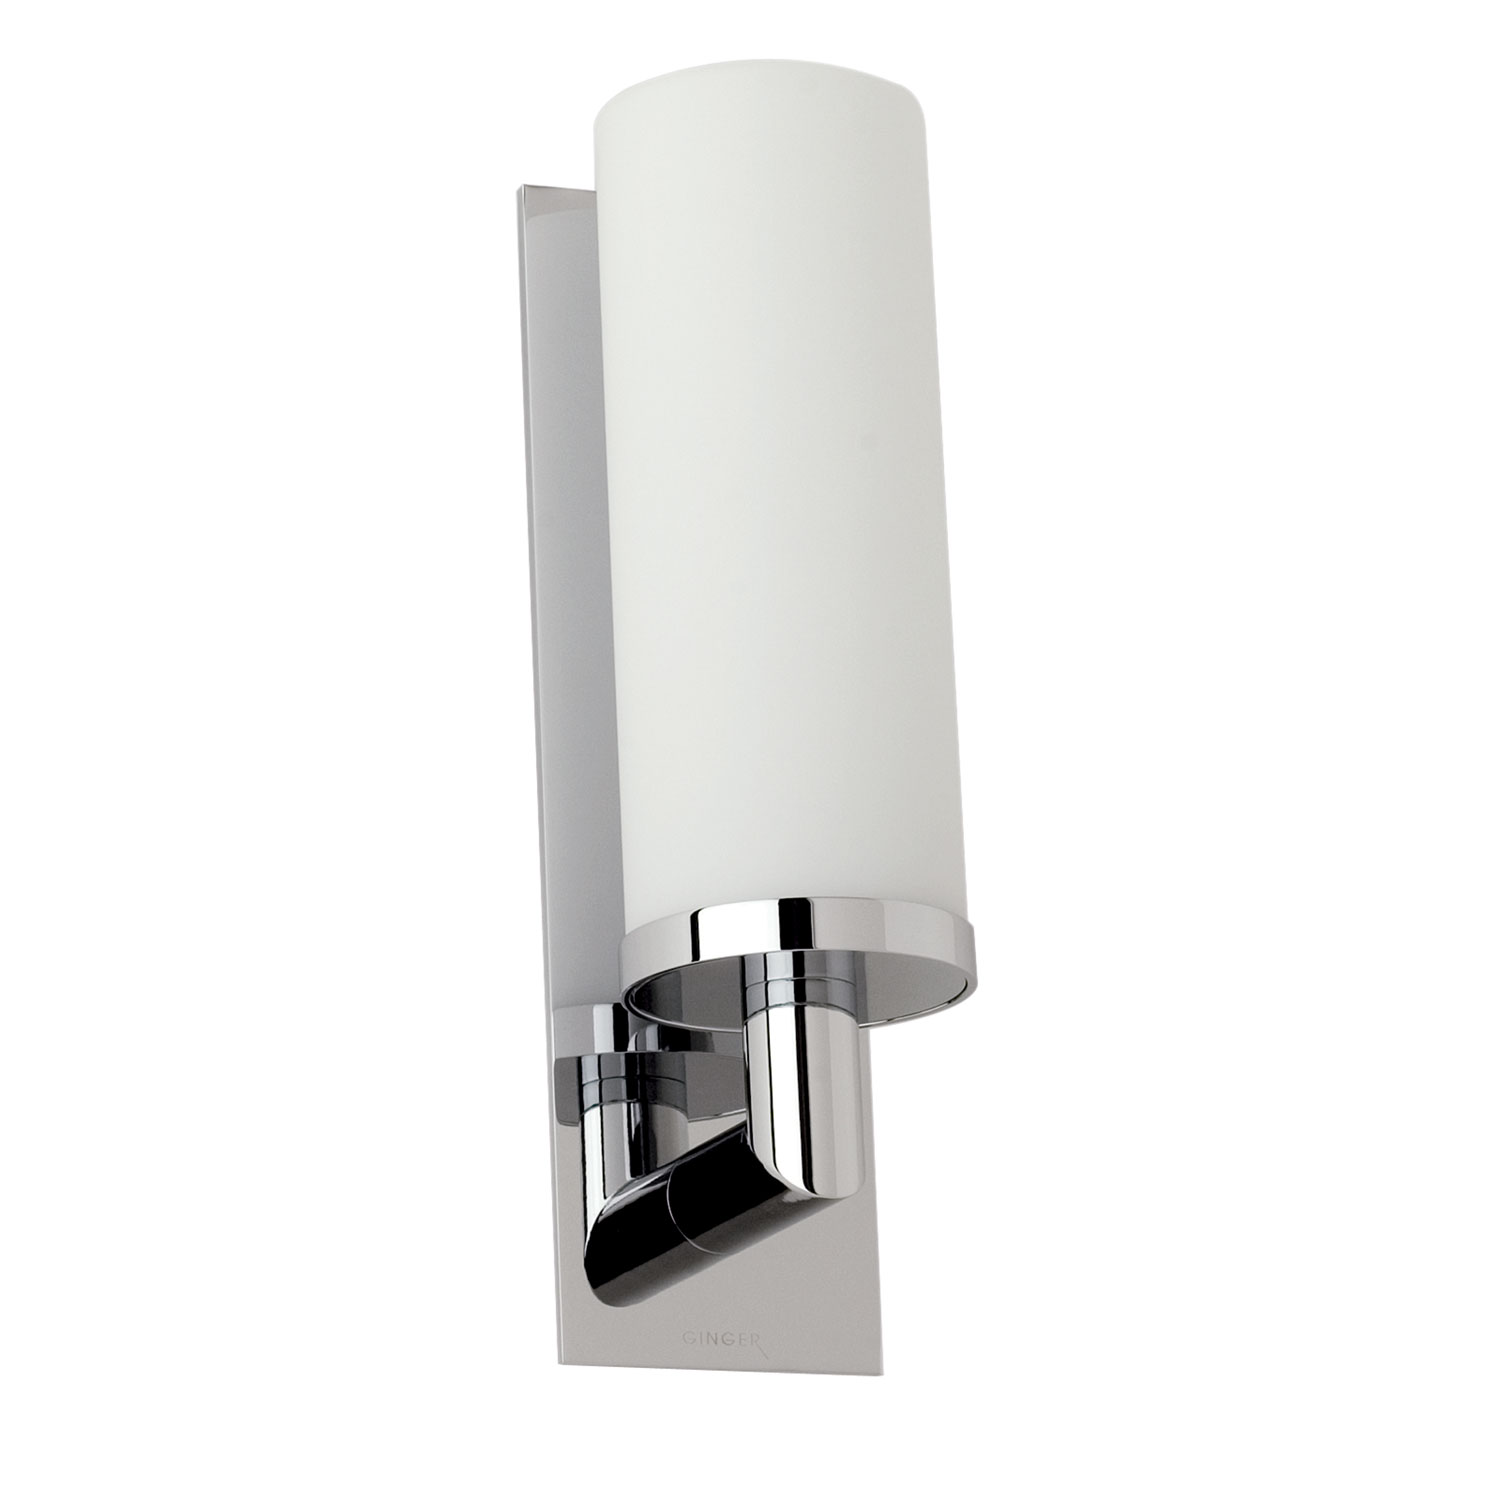 surface vanity wall sconce by ginger 2881 pc rh lightology com